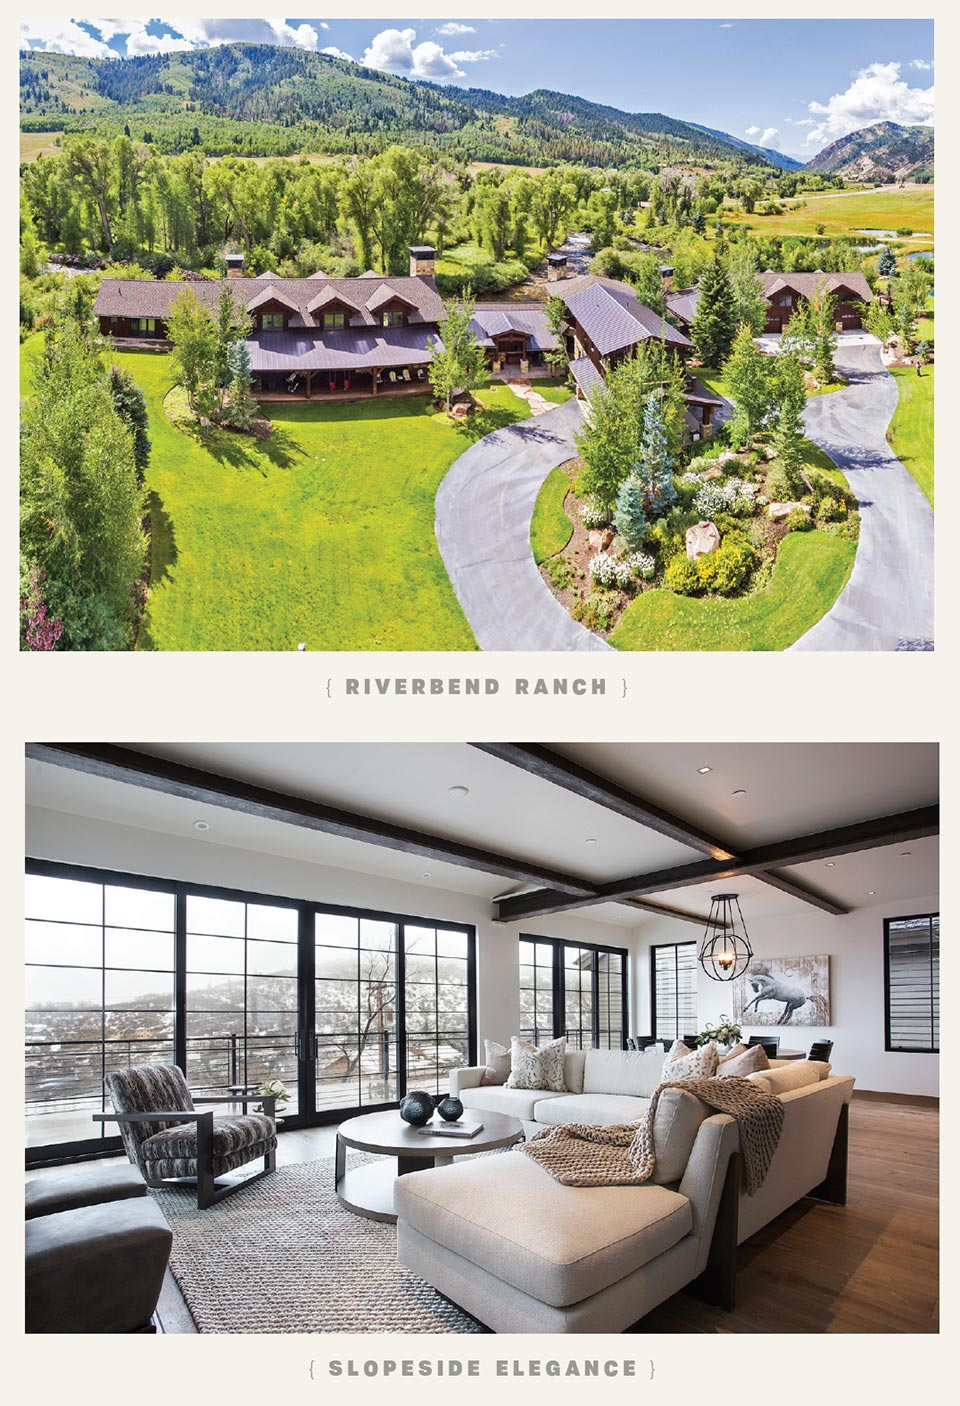 Luxury Listings in the Place We Call Home- Park City Riverbend Ranch and Slopeside Elegance